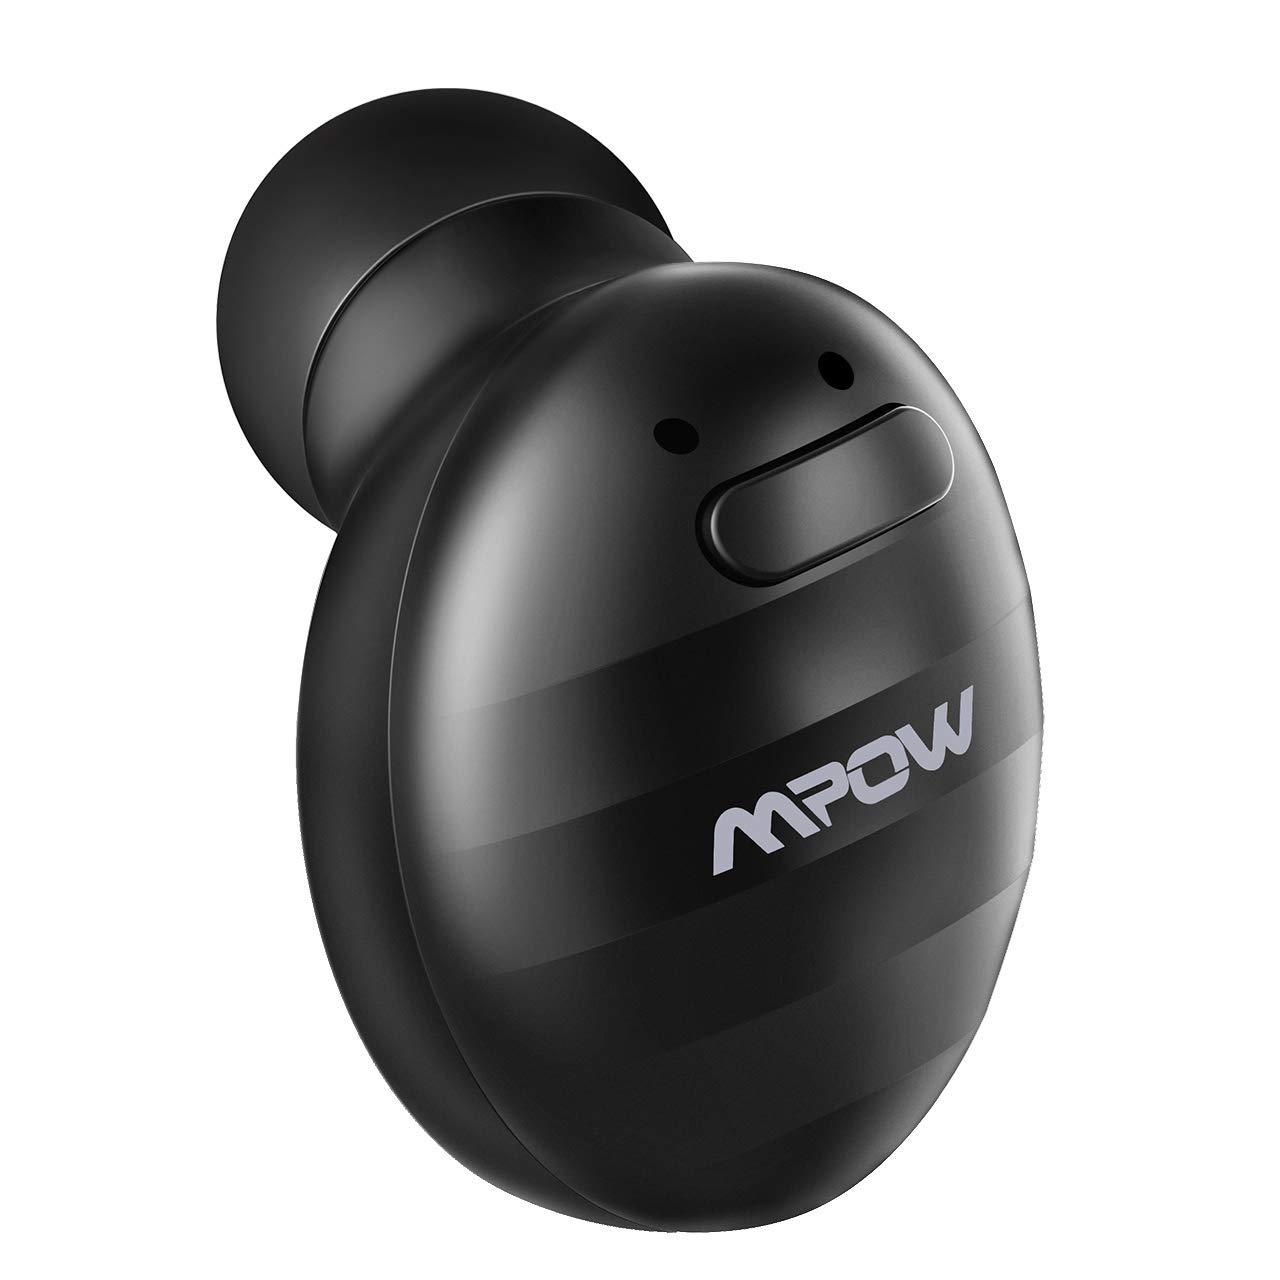 c1dfa1ab223 Mpow EM6 Bluetooth Earpiece, V4.1 Wireless Earbud with Mic, Single Mini  Bluetooth Earbud, Invisible Headphone with 6 Hour Playtime, Car Bluetooth  Headset ...